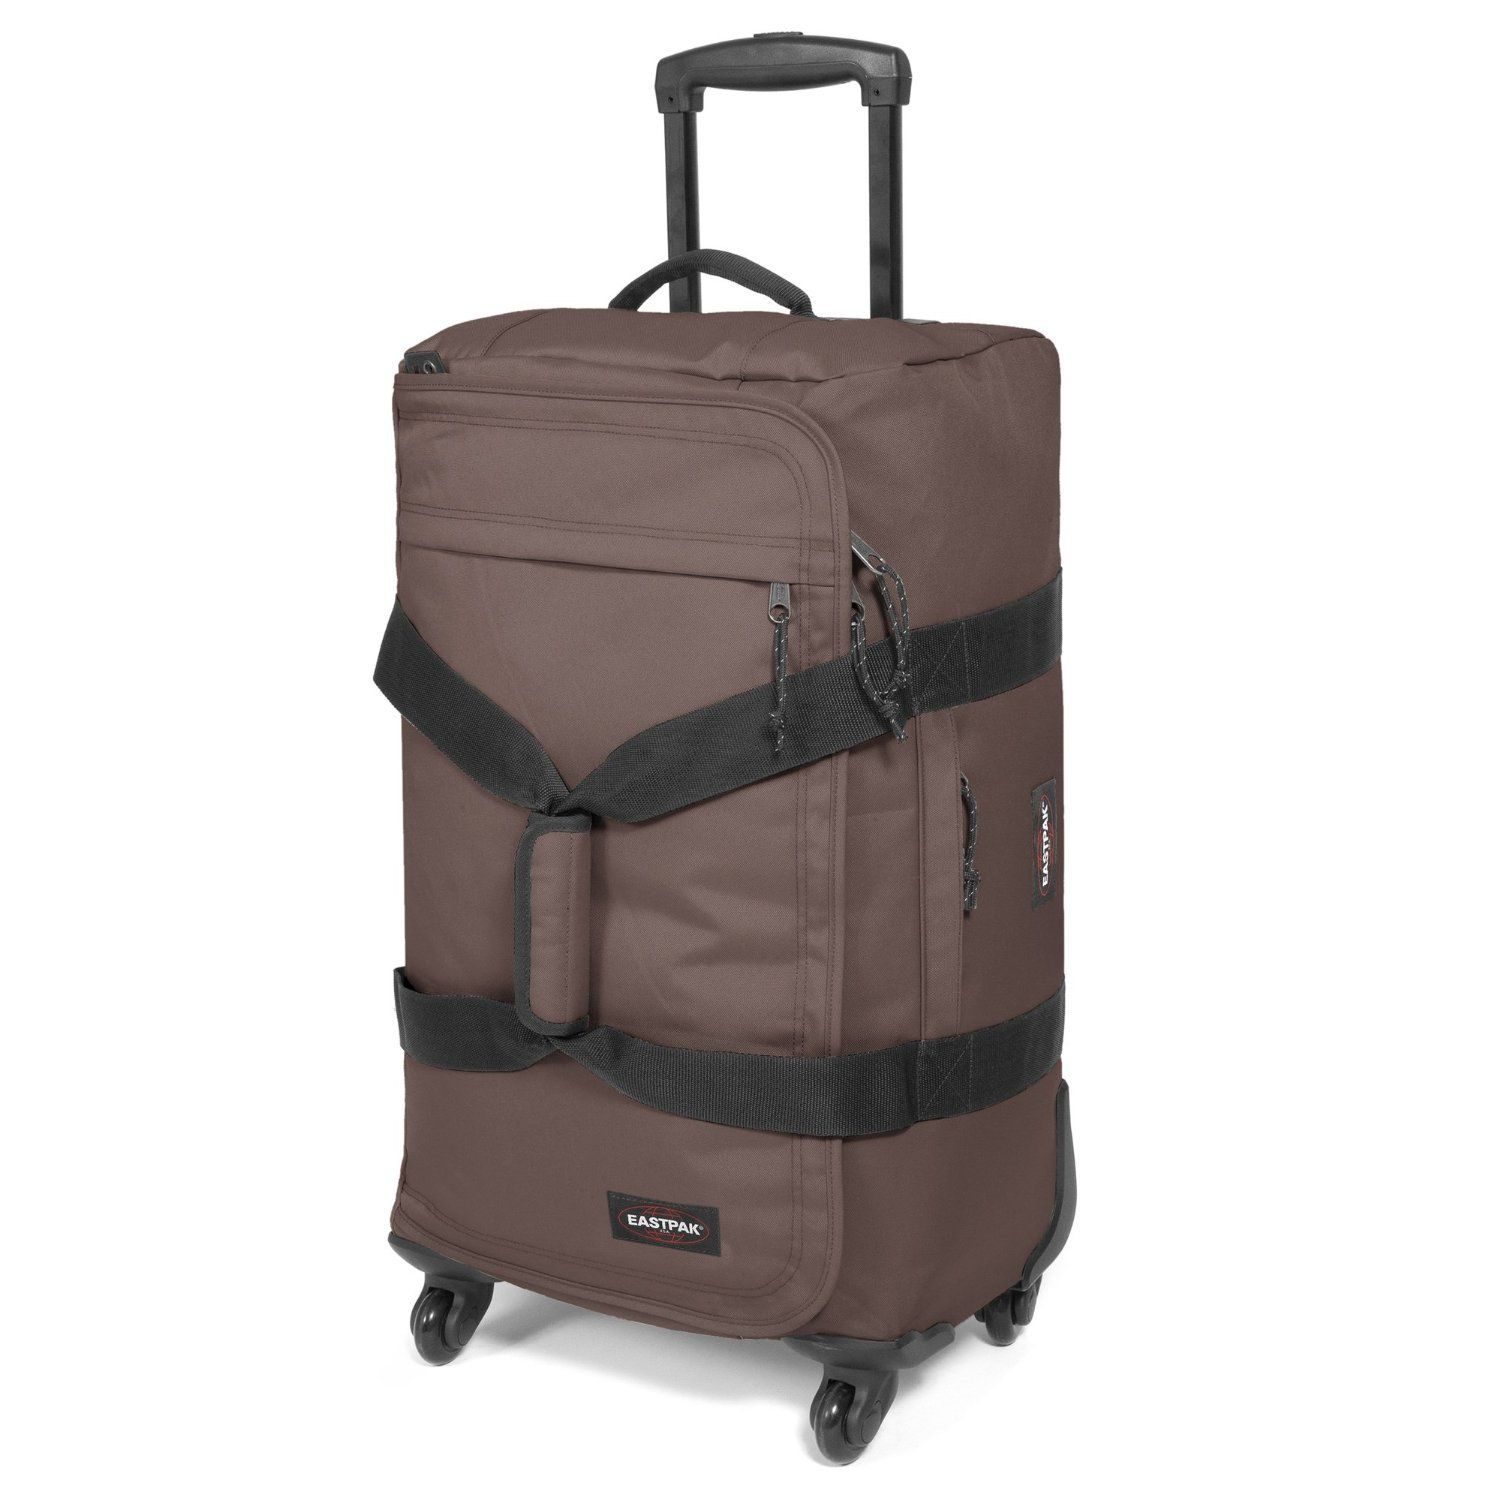 Eastpak Spinnerz Marrone 60.0 L EK40420H: Amazon.it: Valigeria